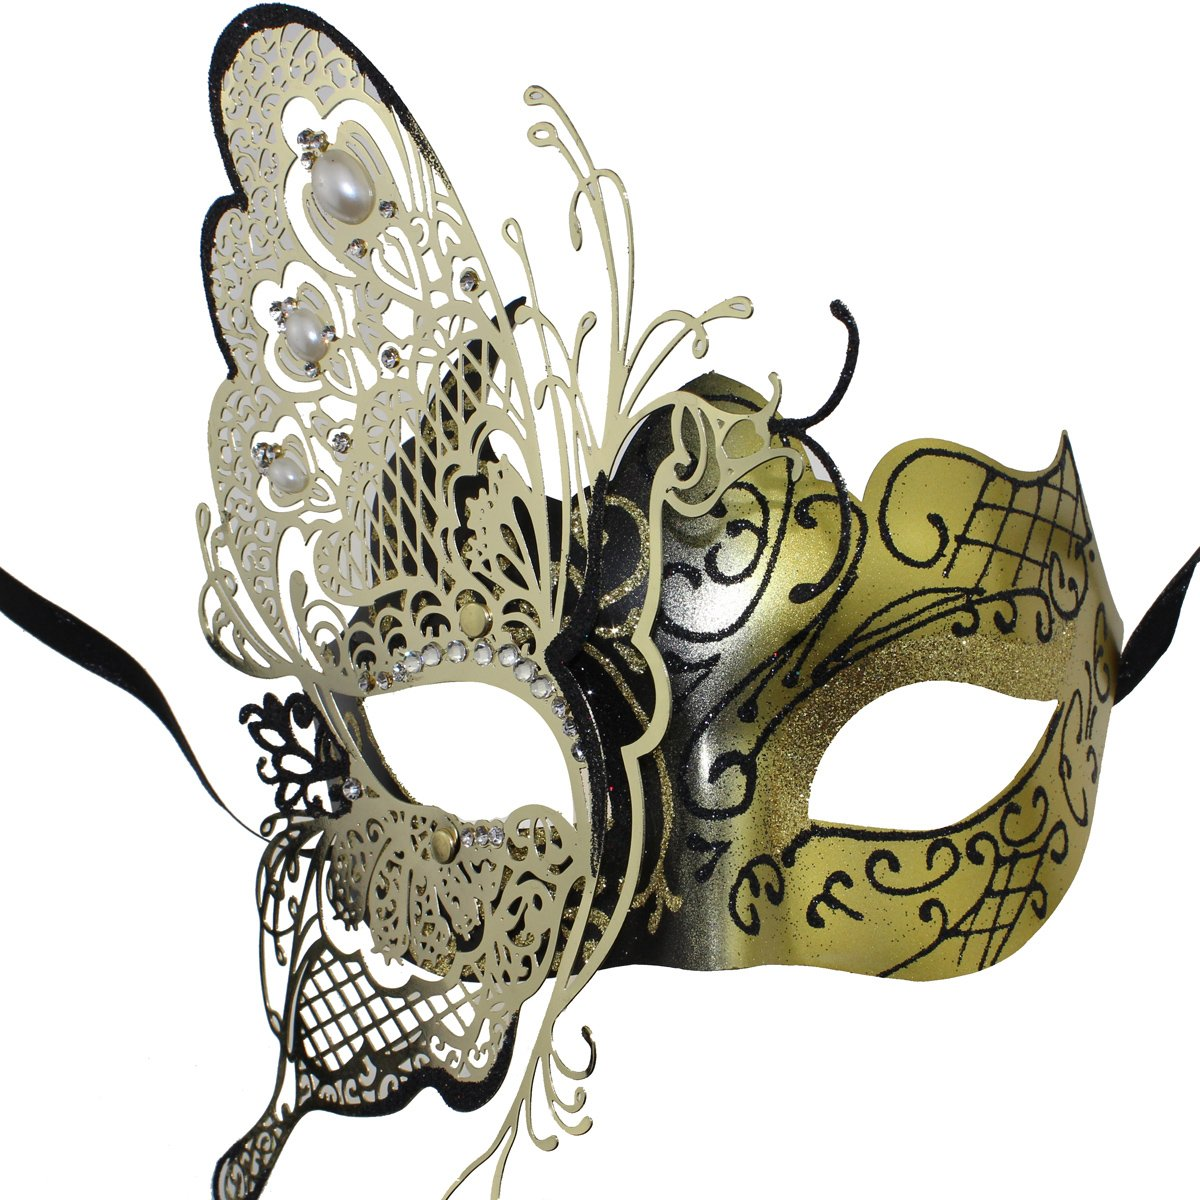 Metal Masquerade Masks Mardi Gras Costumes with Butterfly Shape